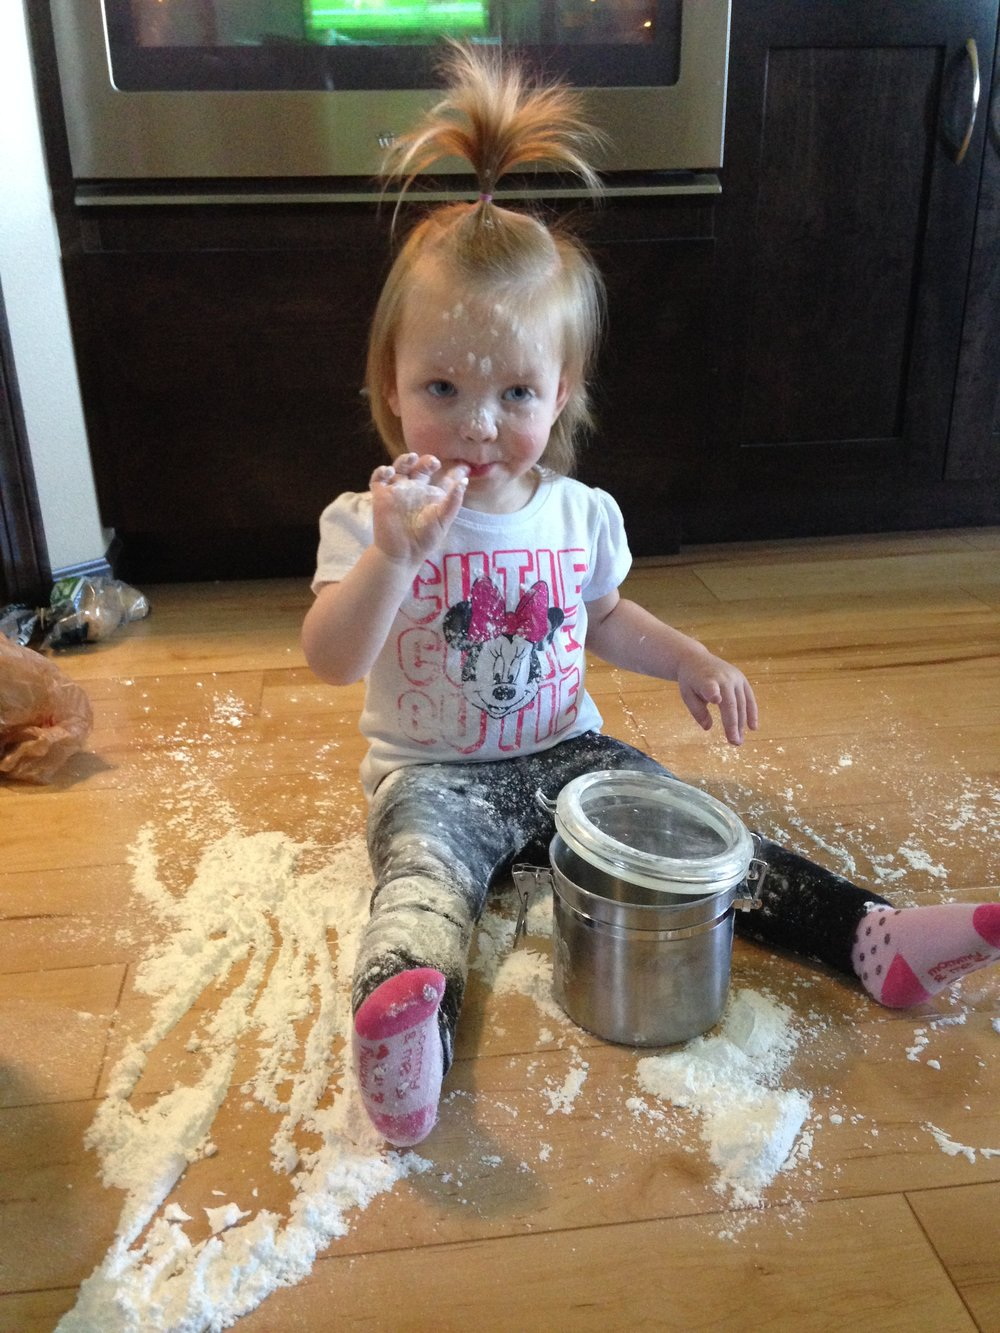 My niece Lauren (age 2.5 at the time) discovering powdered sugar is fun to make art with and also quite delicious!